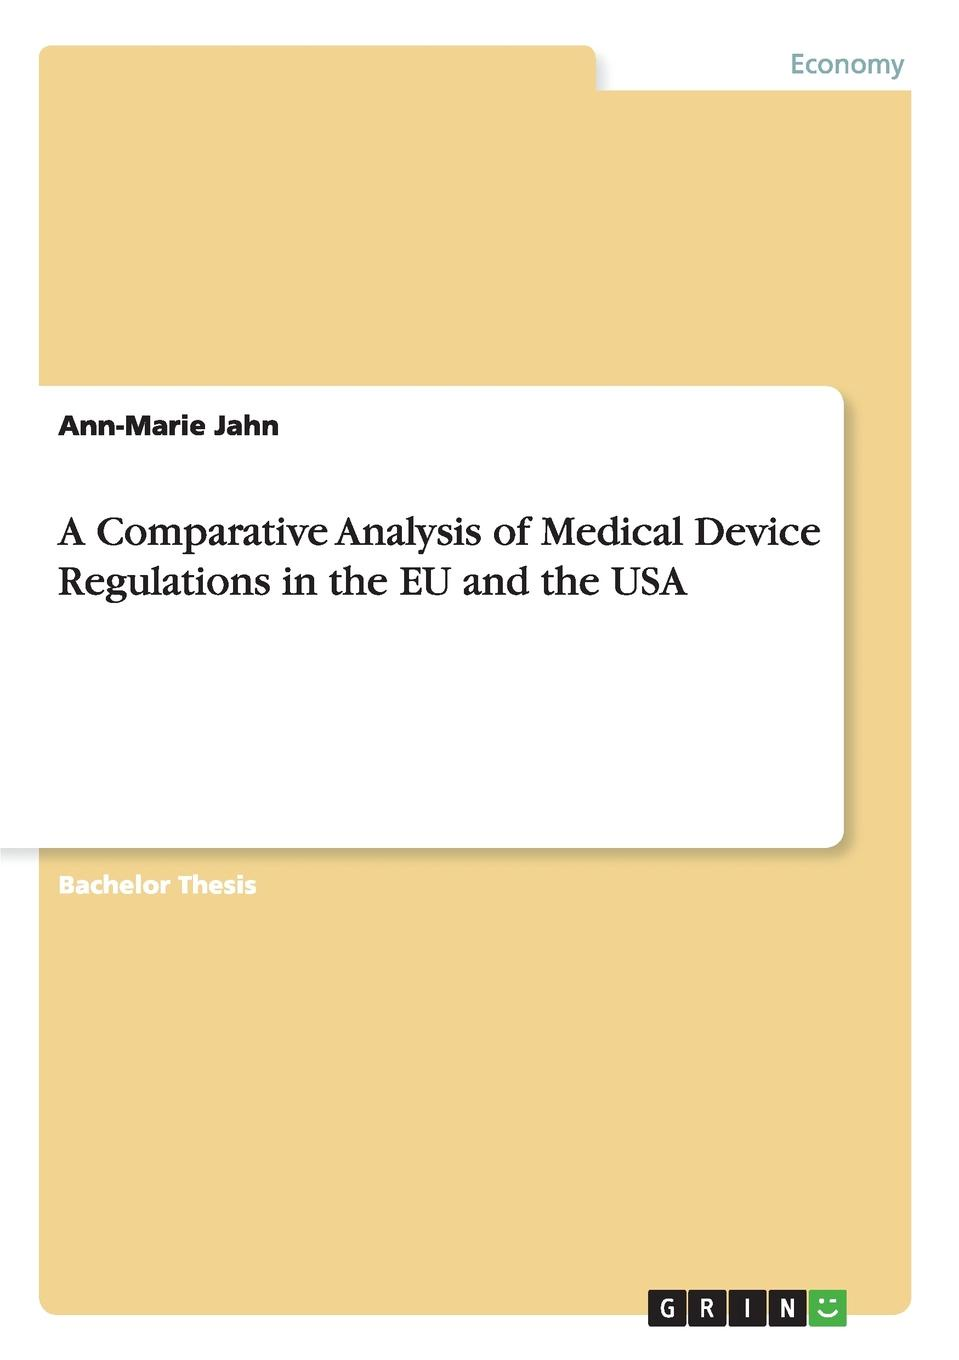 Ann-Marie Jahn A Comparative Analysis of Medical Device Regulations in the EU and the USA plastics in medical devices